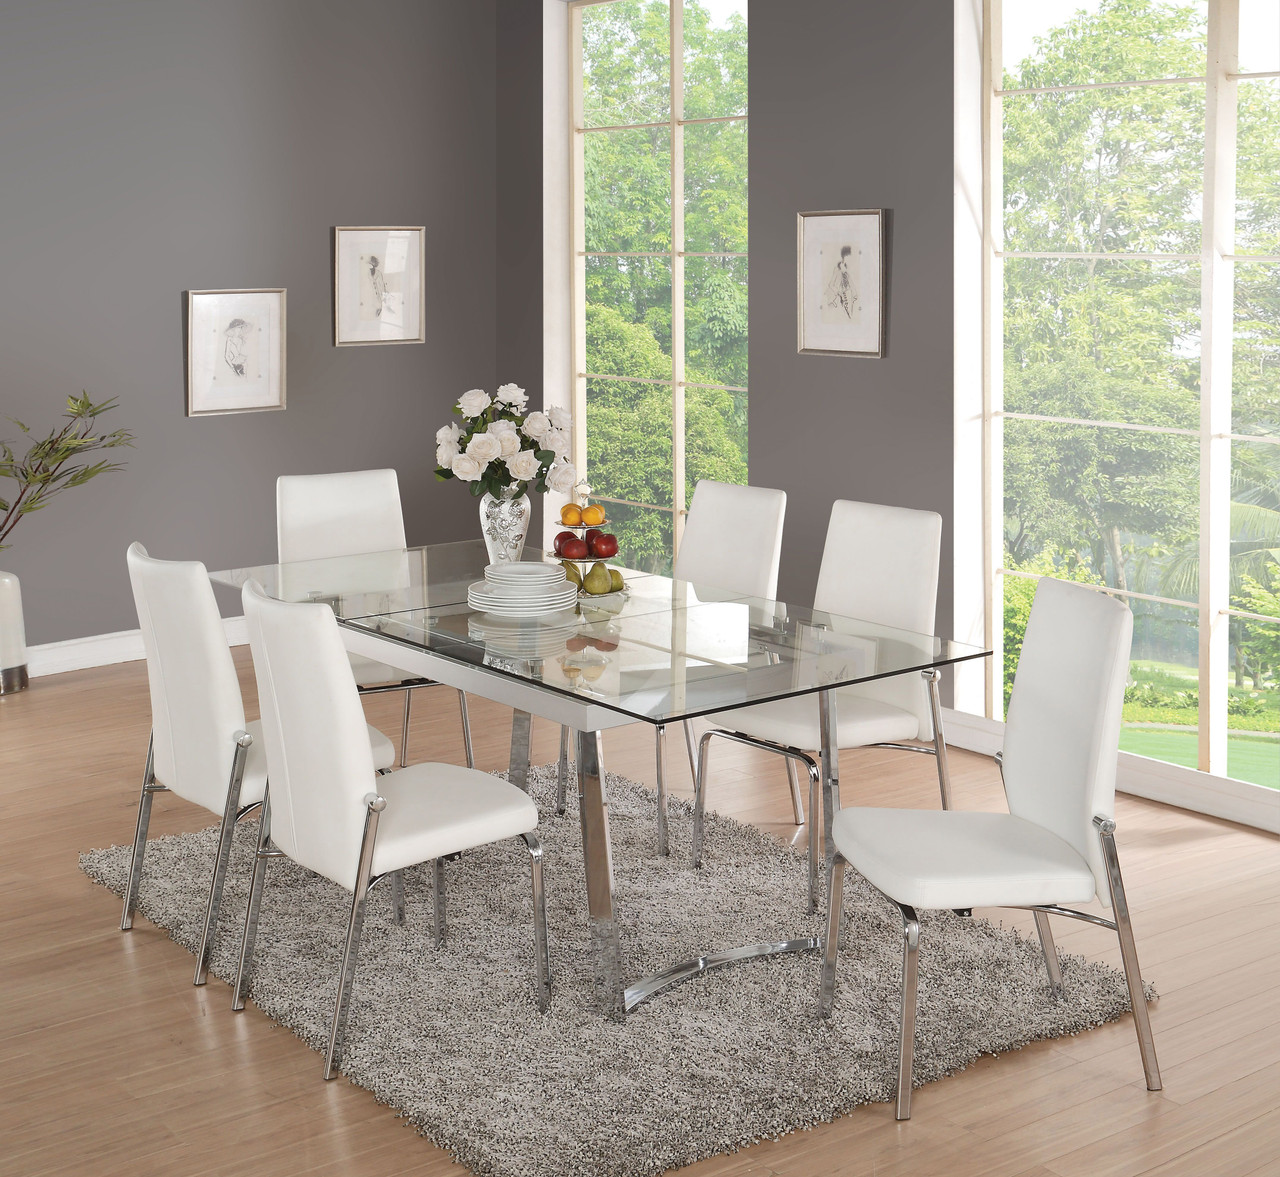 Magnificent Antonia Modern Extendable Dining Table Set Squirreltailoven Fun Painted Chair Ideas Images Squirreltailovenorg